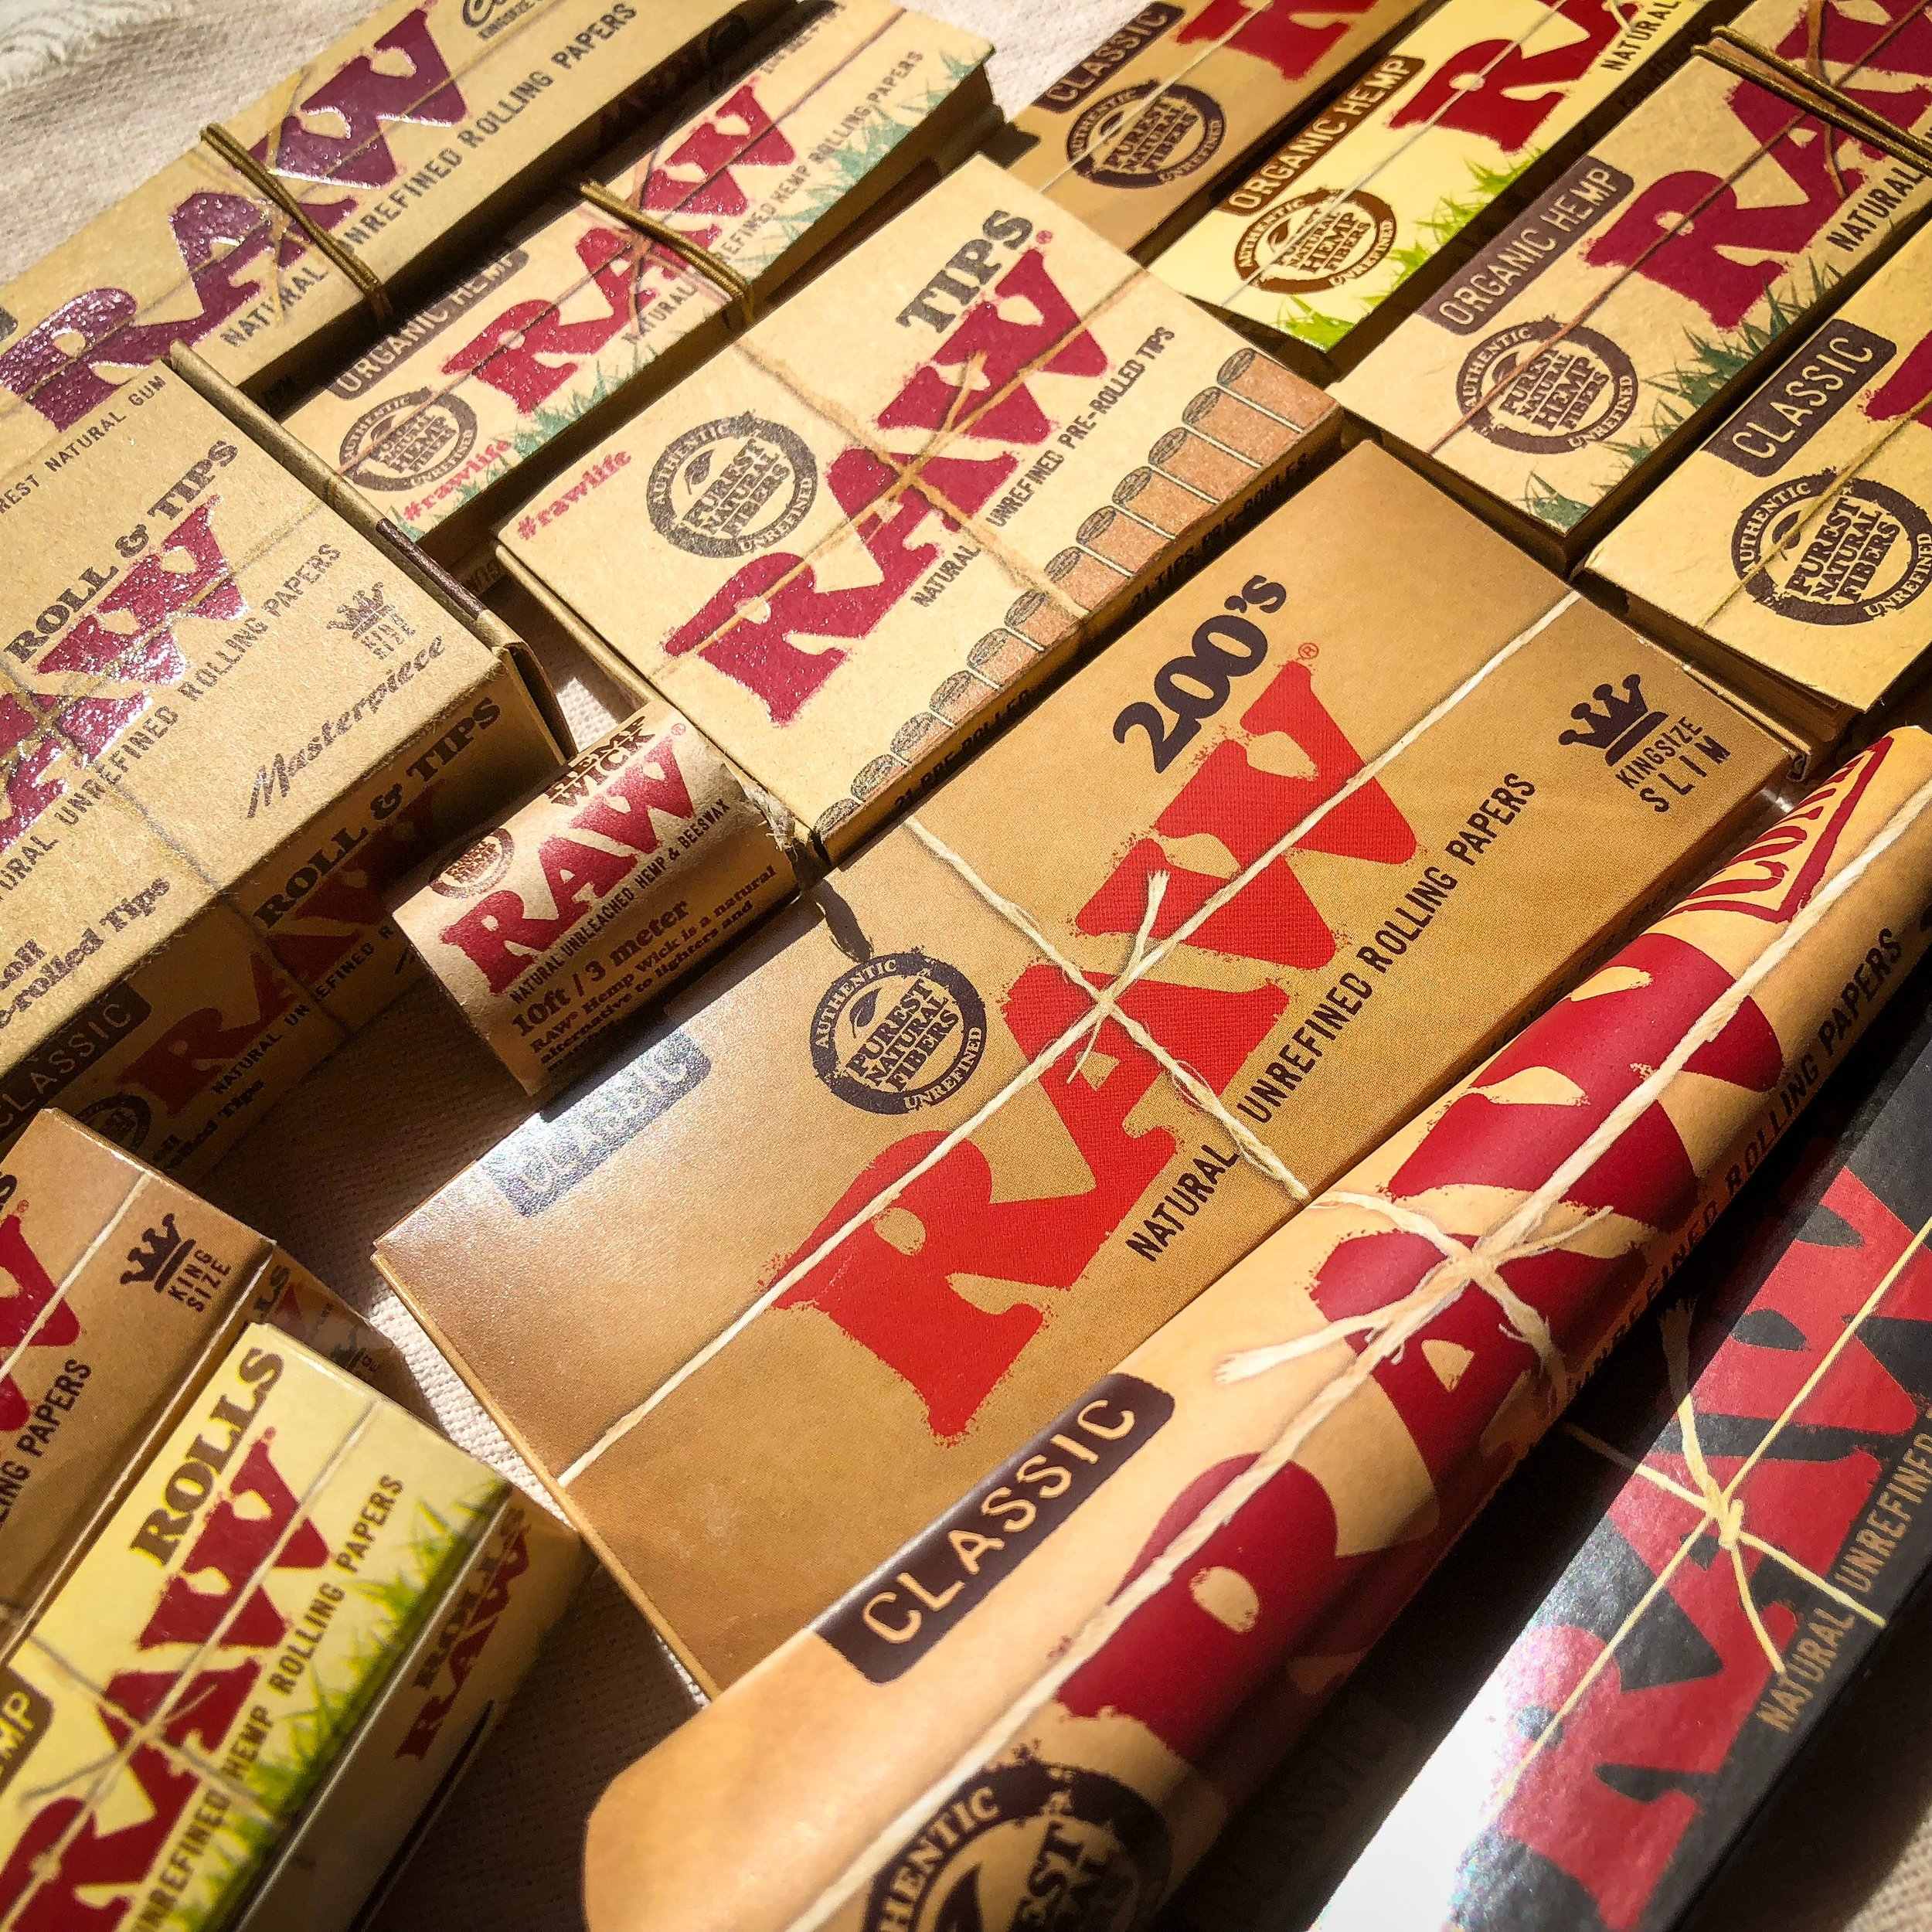 Smoking Paraphernalia - Papers, pipes, Bongs and much much more…